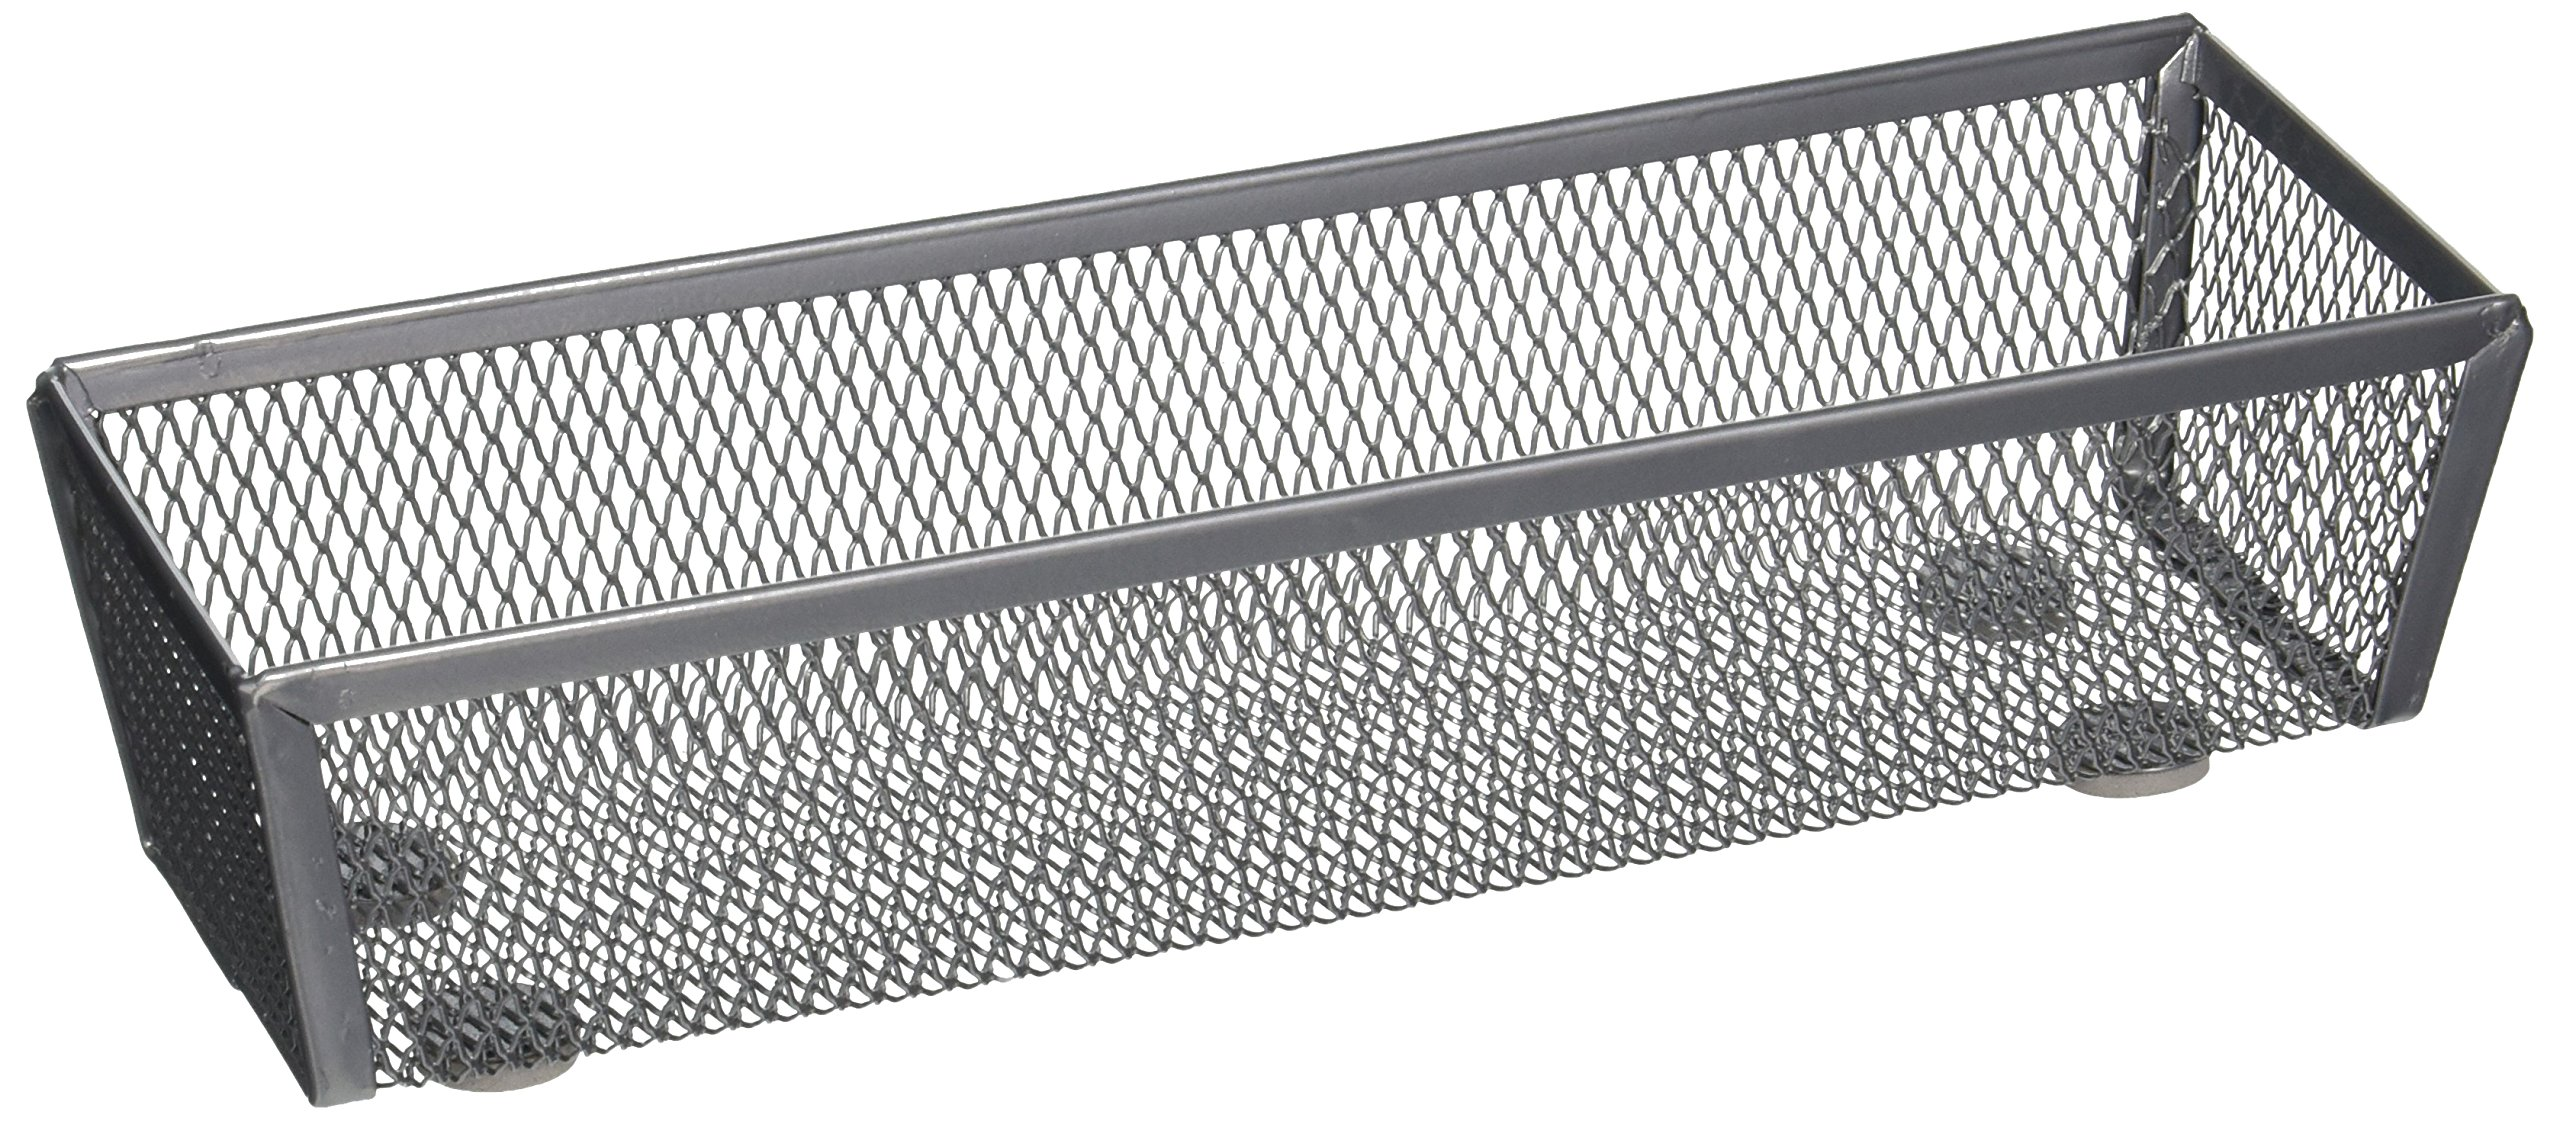 Honey-Can-Do KCH-02155 Steel Mesh Drawer Organizer, Silver by Honey-Can-Do